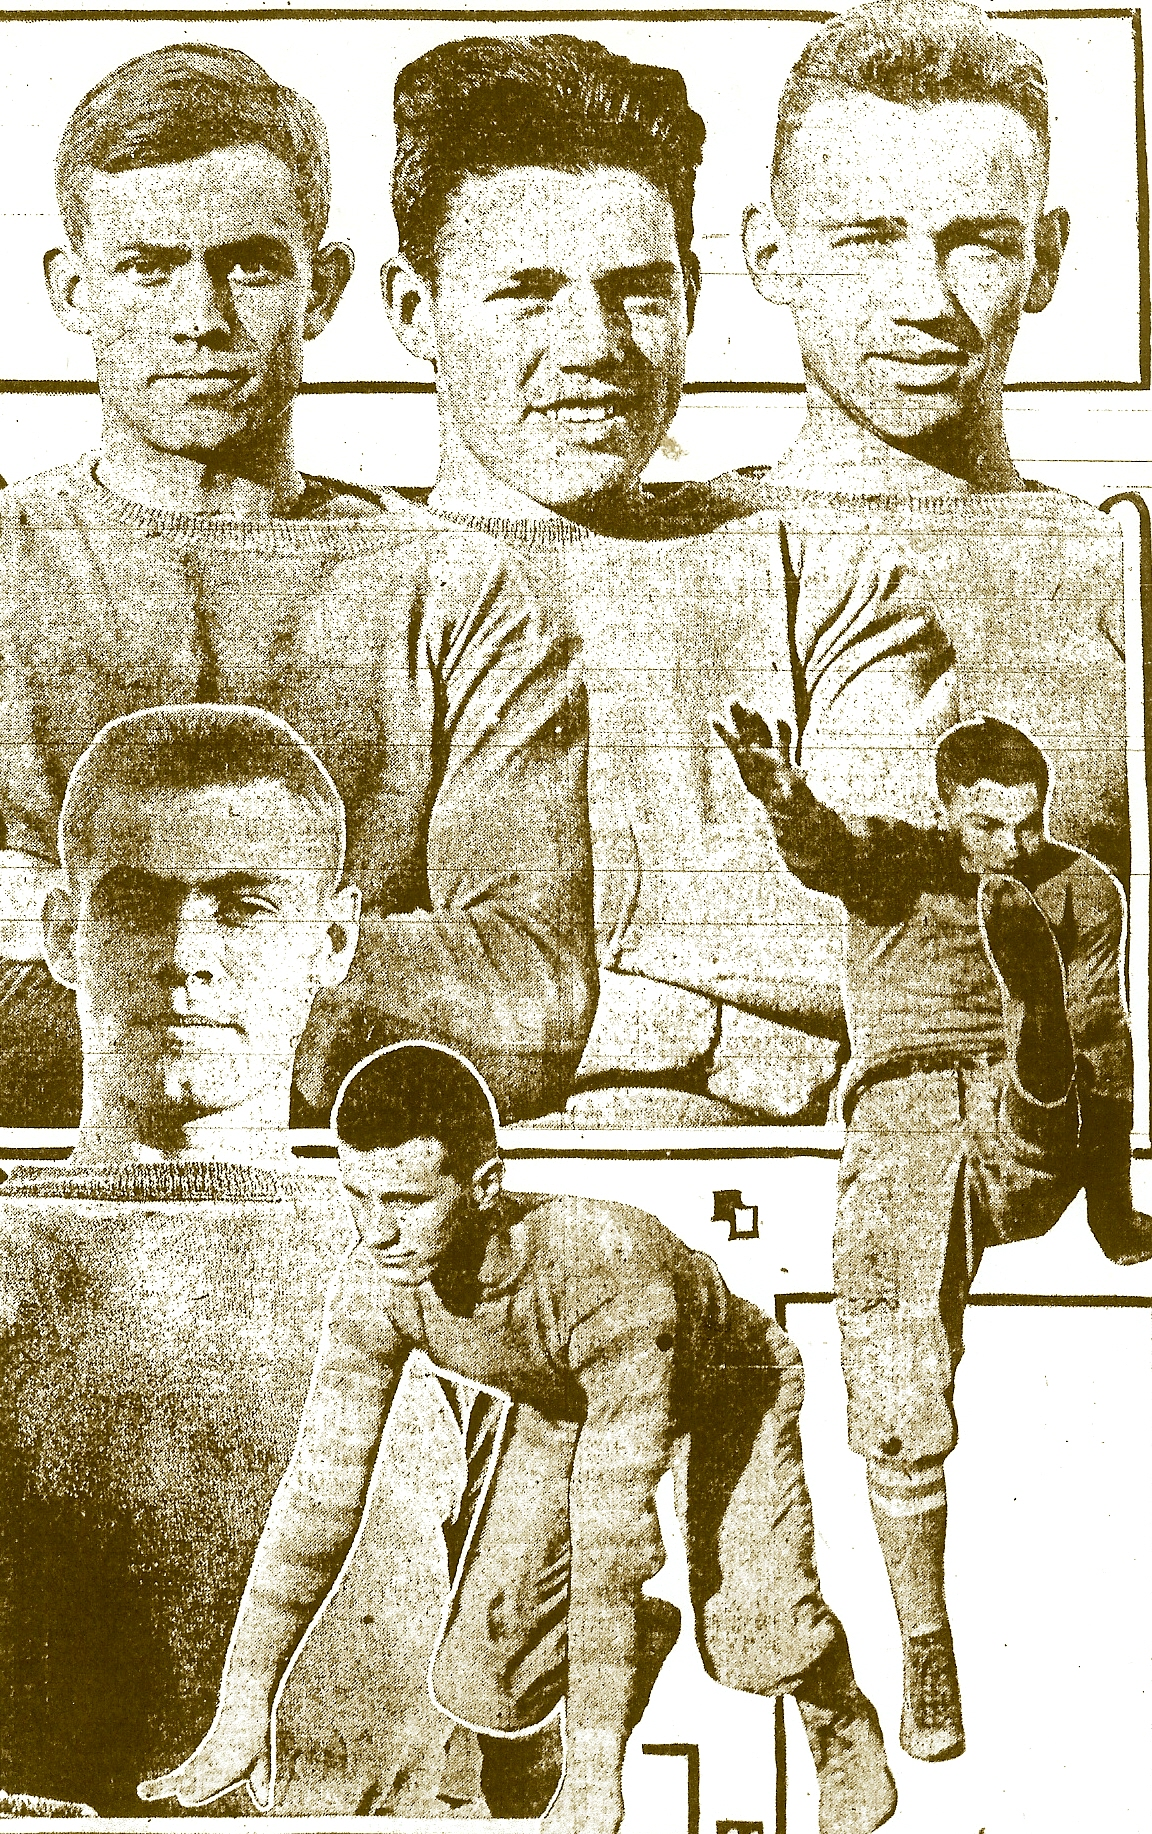 San Diego High and Manual Arts players were on Jack Darroch's All-Southern California 11.  Clockwise from lower left:  Guard Cortis Majors, left halfback Bryan (Pesky) Sprott, right end Brick Muller, and quarterback Karl Deeds of San Diego.  Fullback Jim Blewett and left tackle Brockman of Manual Arts.